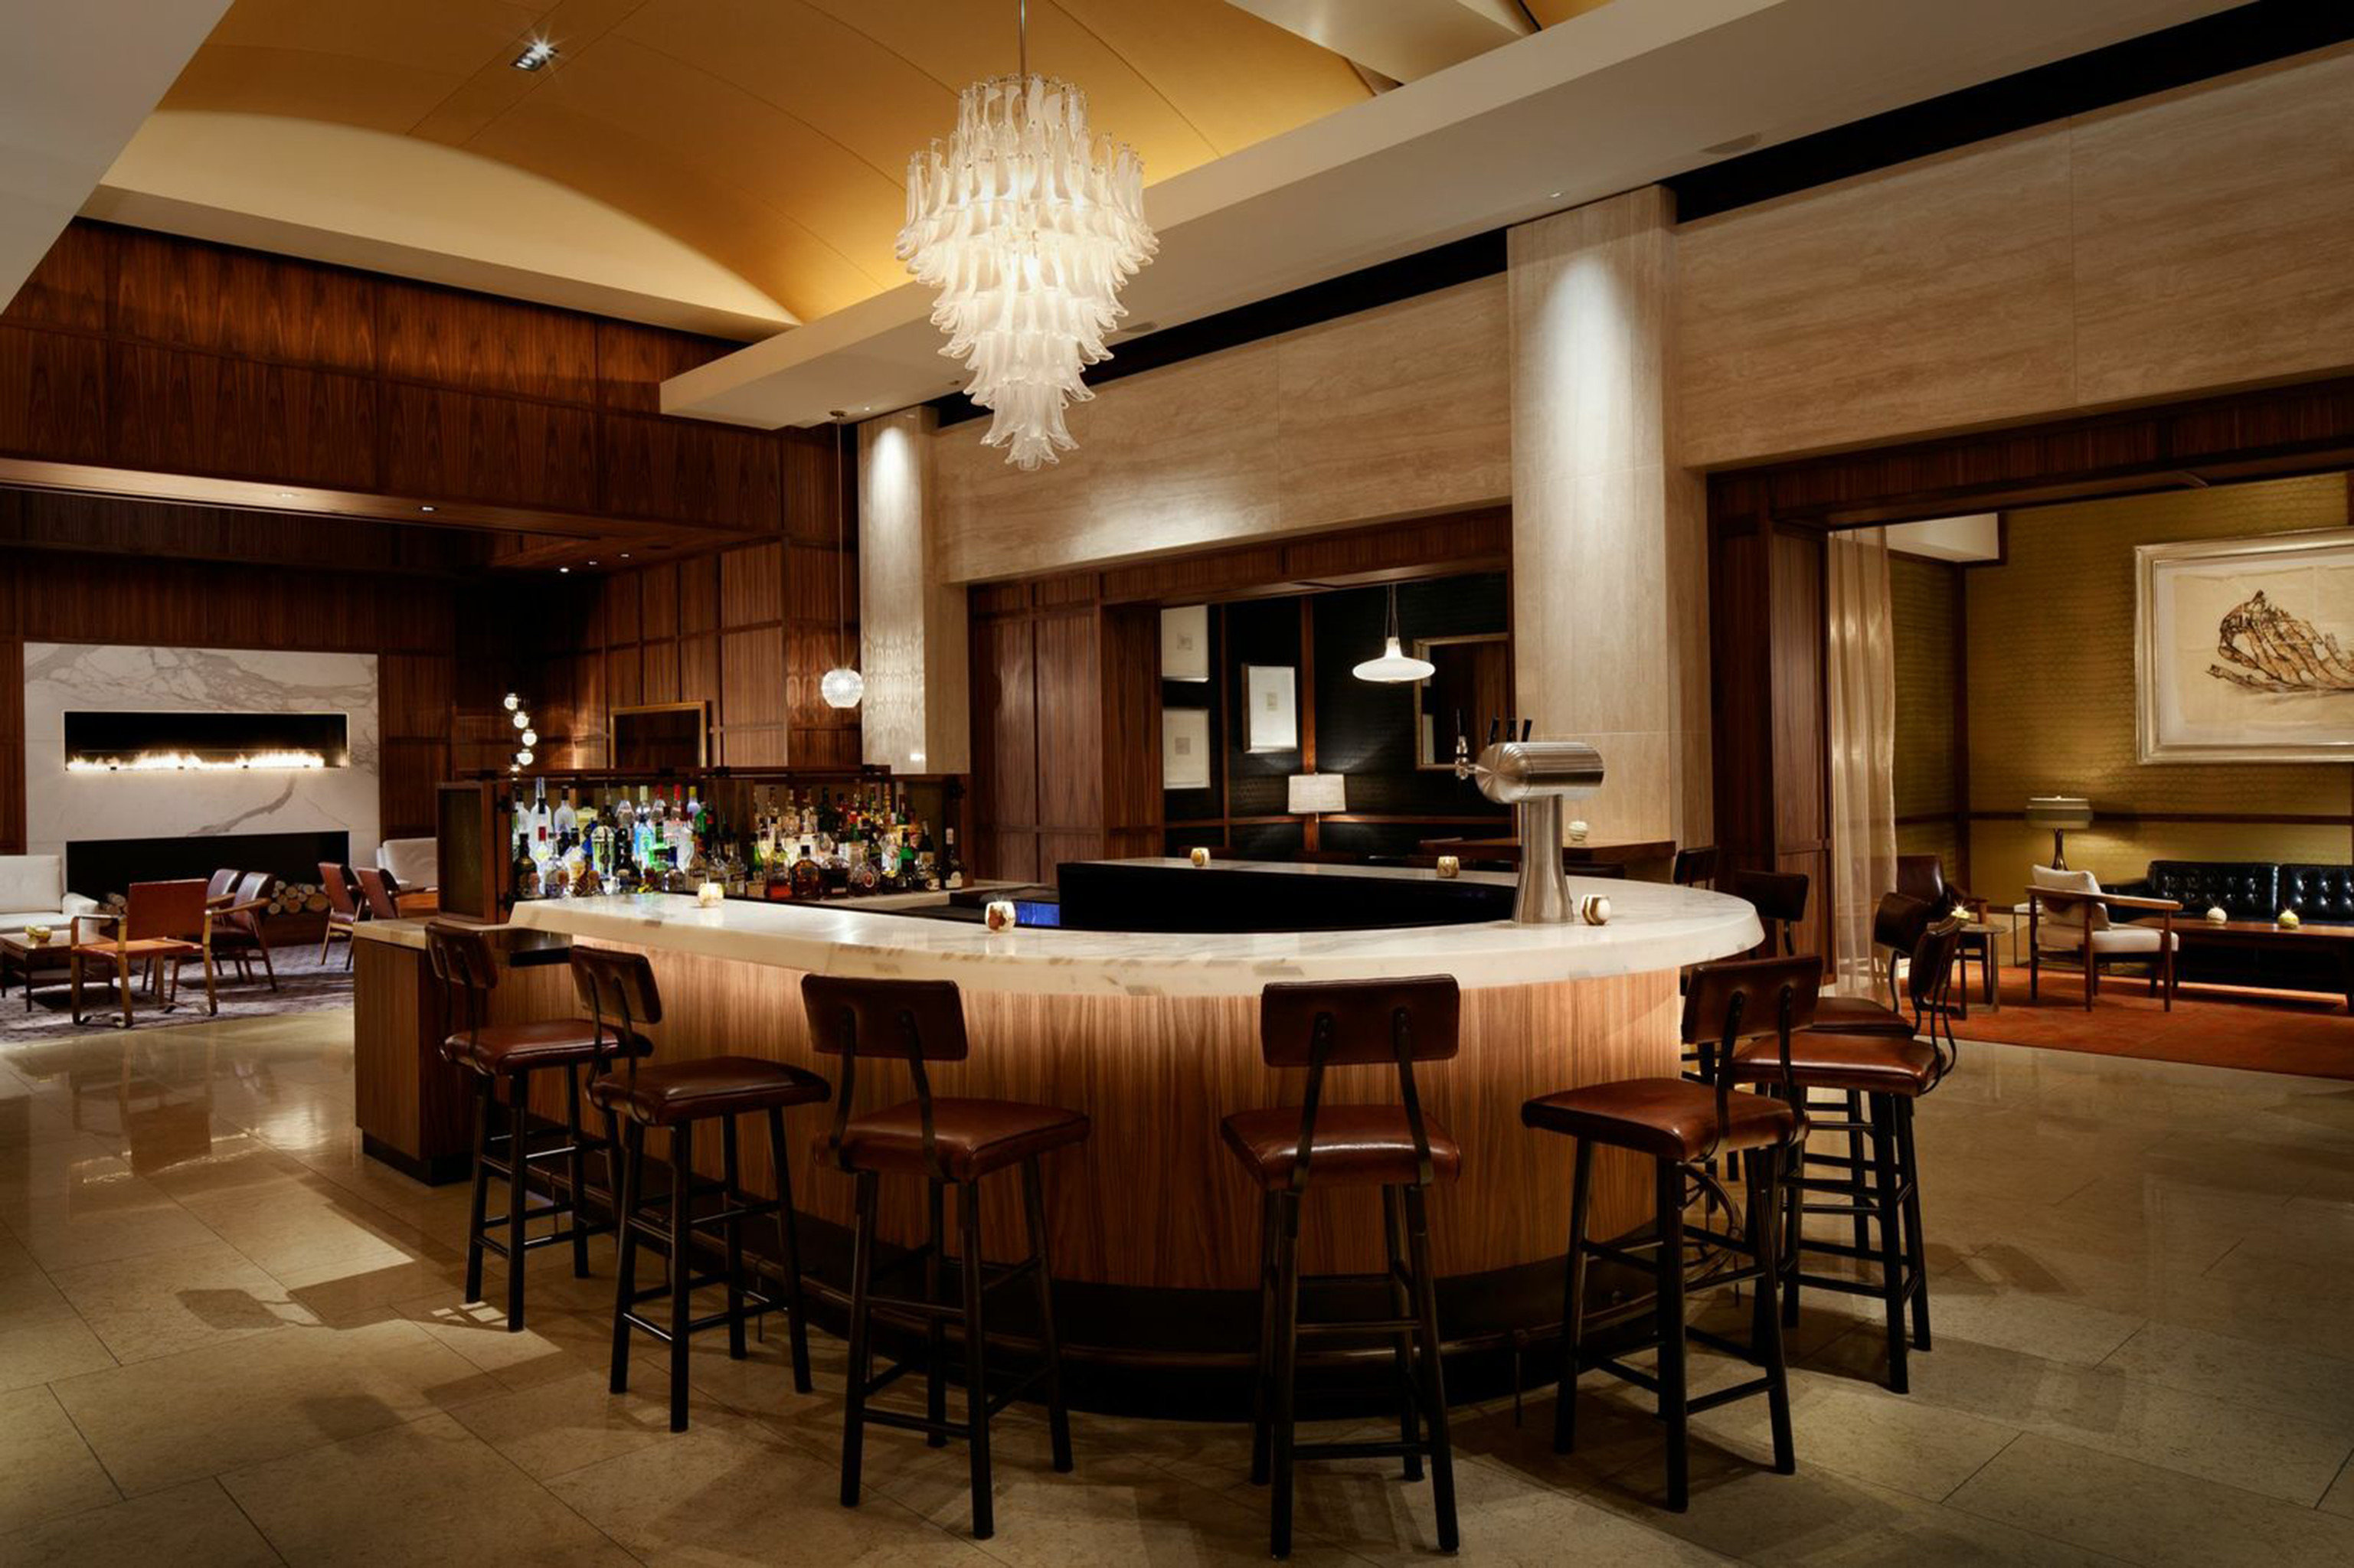 Bar Boston Dining Drink Eat Lounge Luxury Modern Trip Ideas Weekend Getaways Lobby billiard room recreation room restaurant function hall home conference hall café ballroom convention center